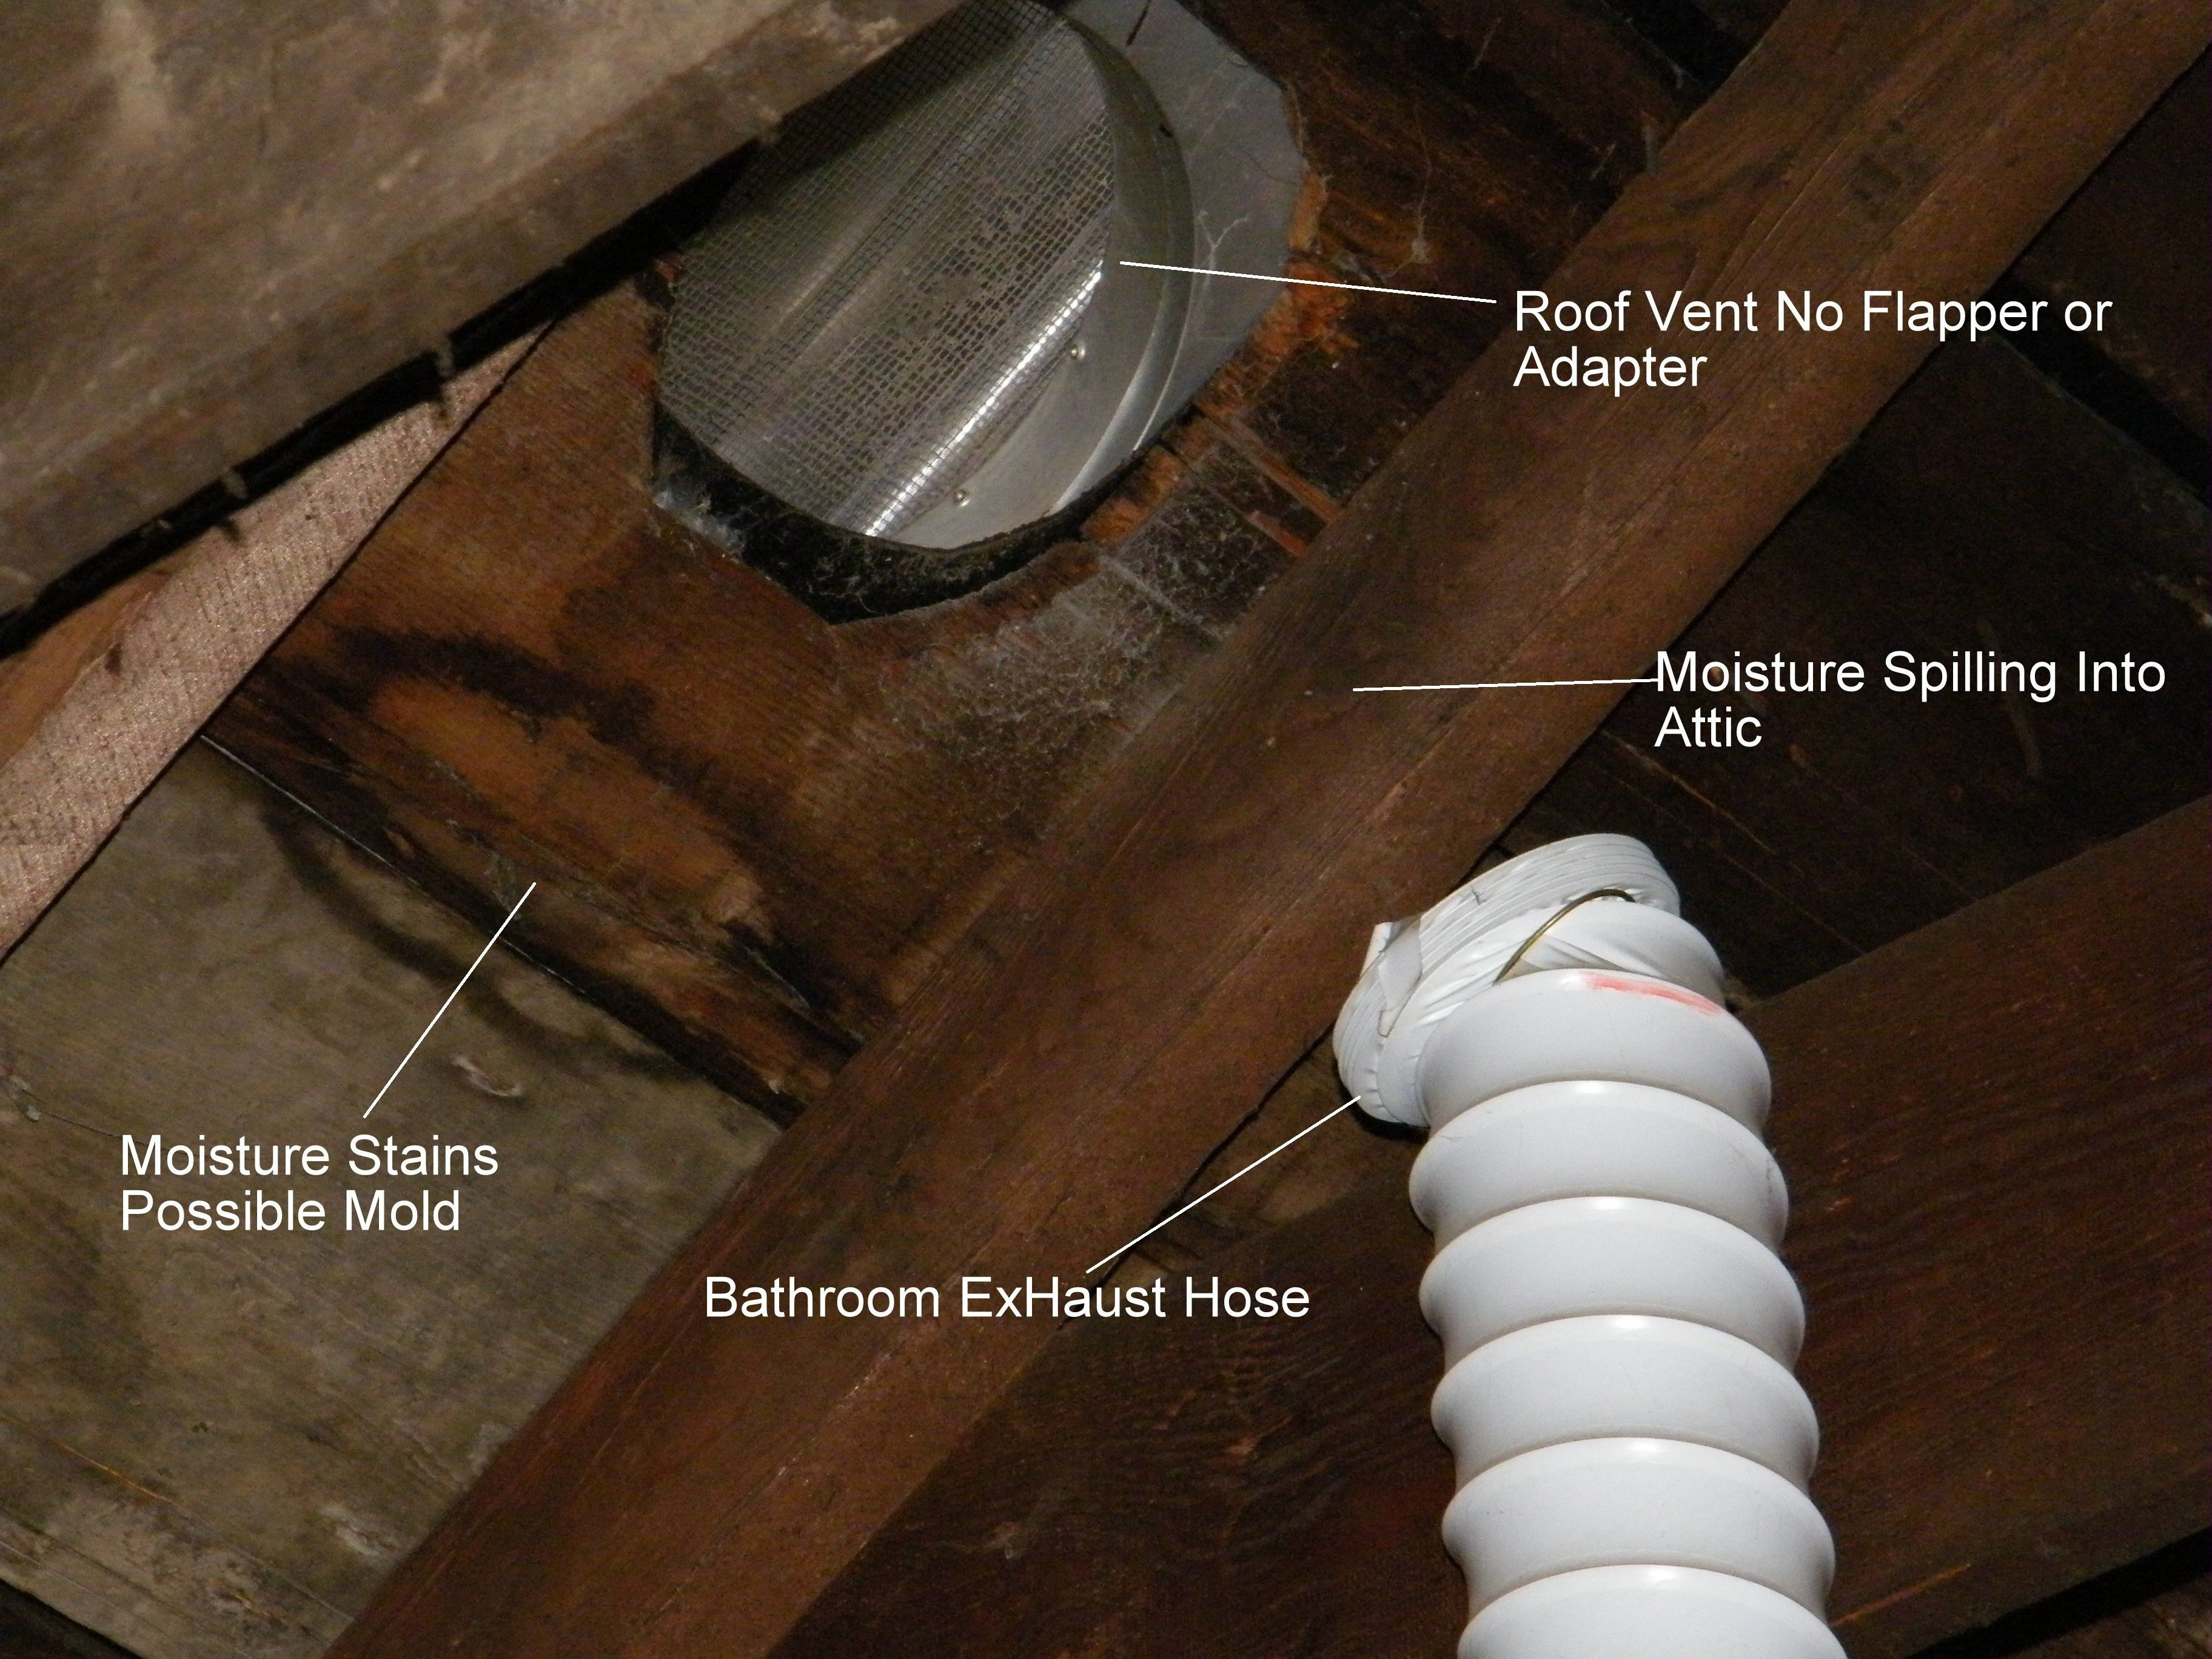 Bathroom fan timer from aircycler wiring diagram - Best Roof Vent For Bathroom Exhaust Fan